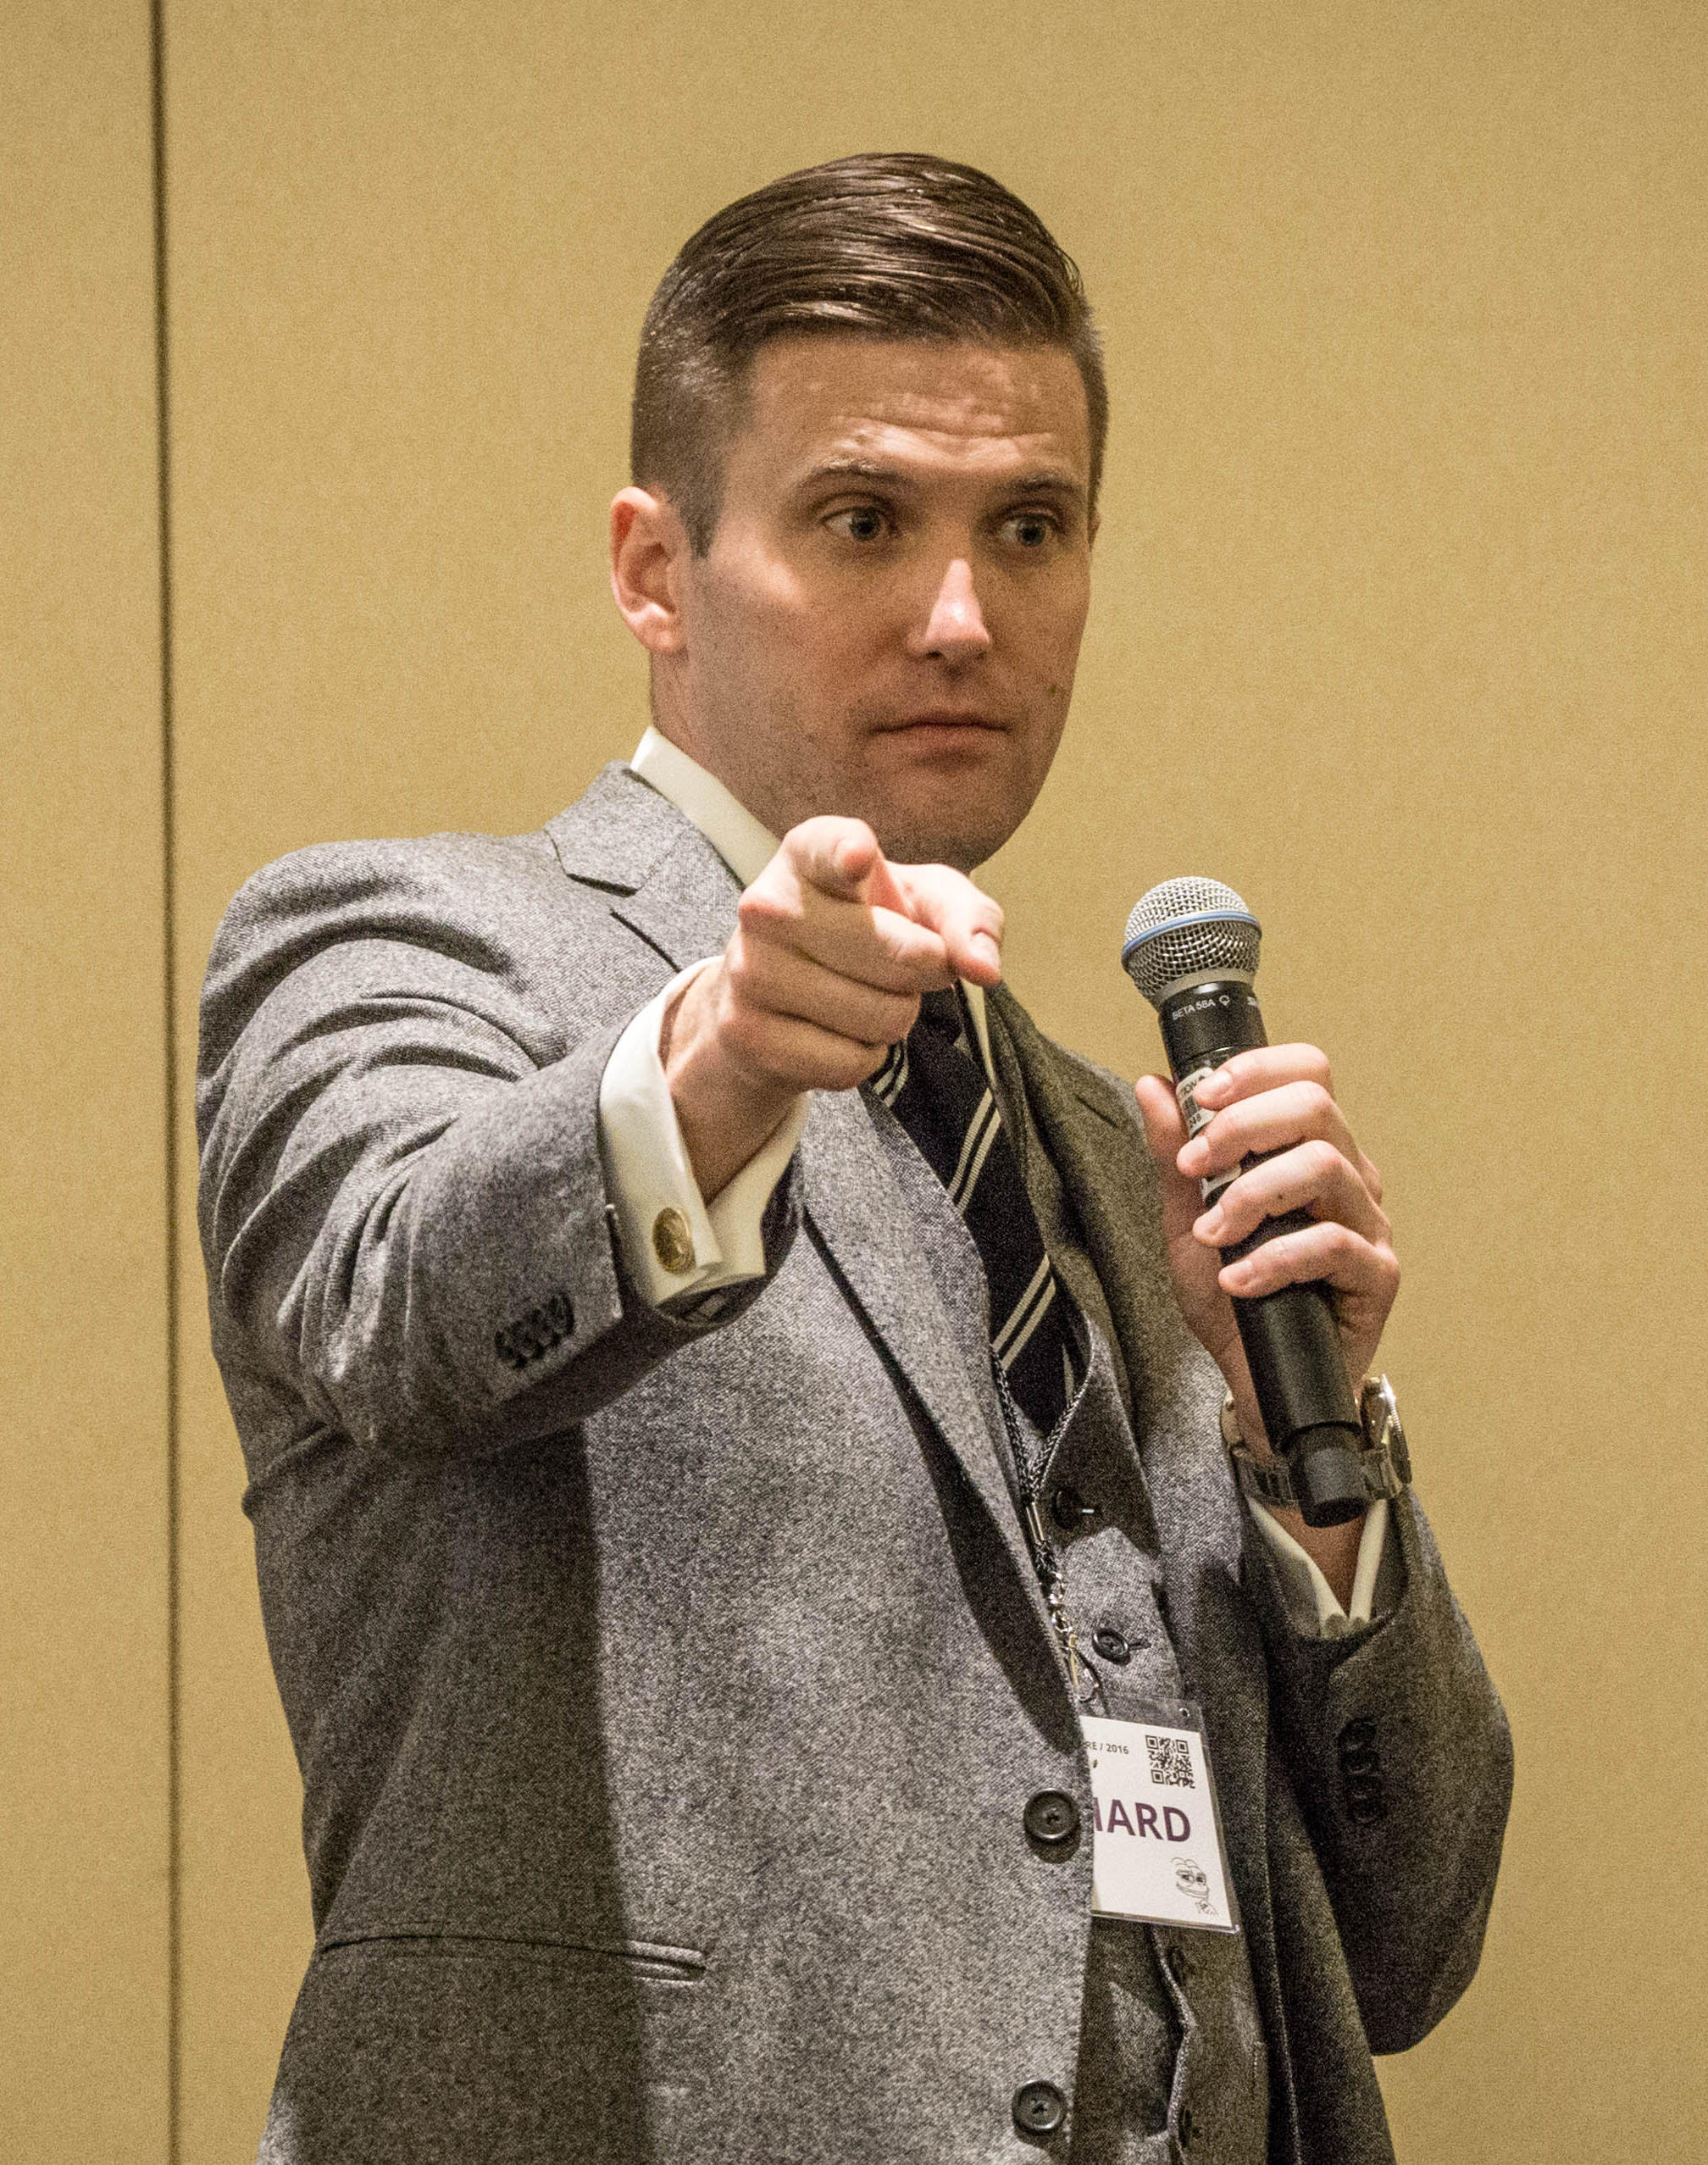 White Nationalist Richard Spencer Asks to Speak at University of MI